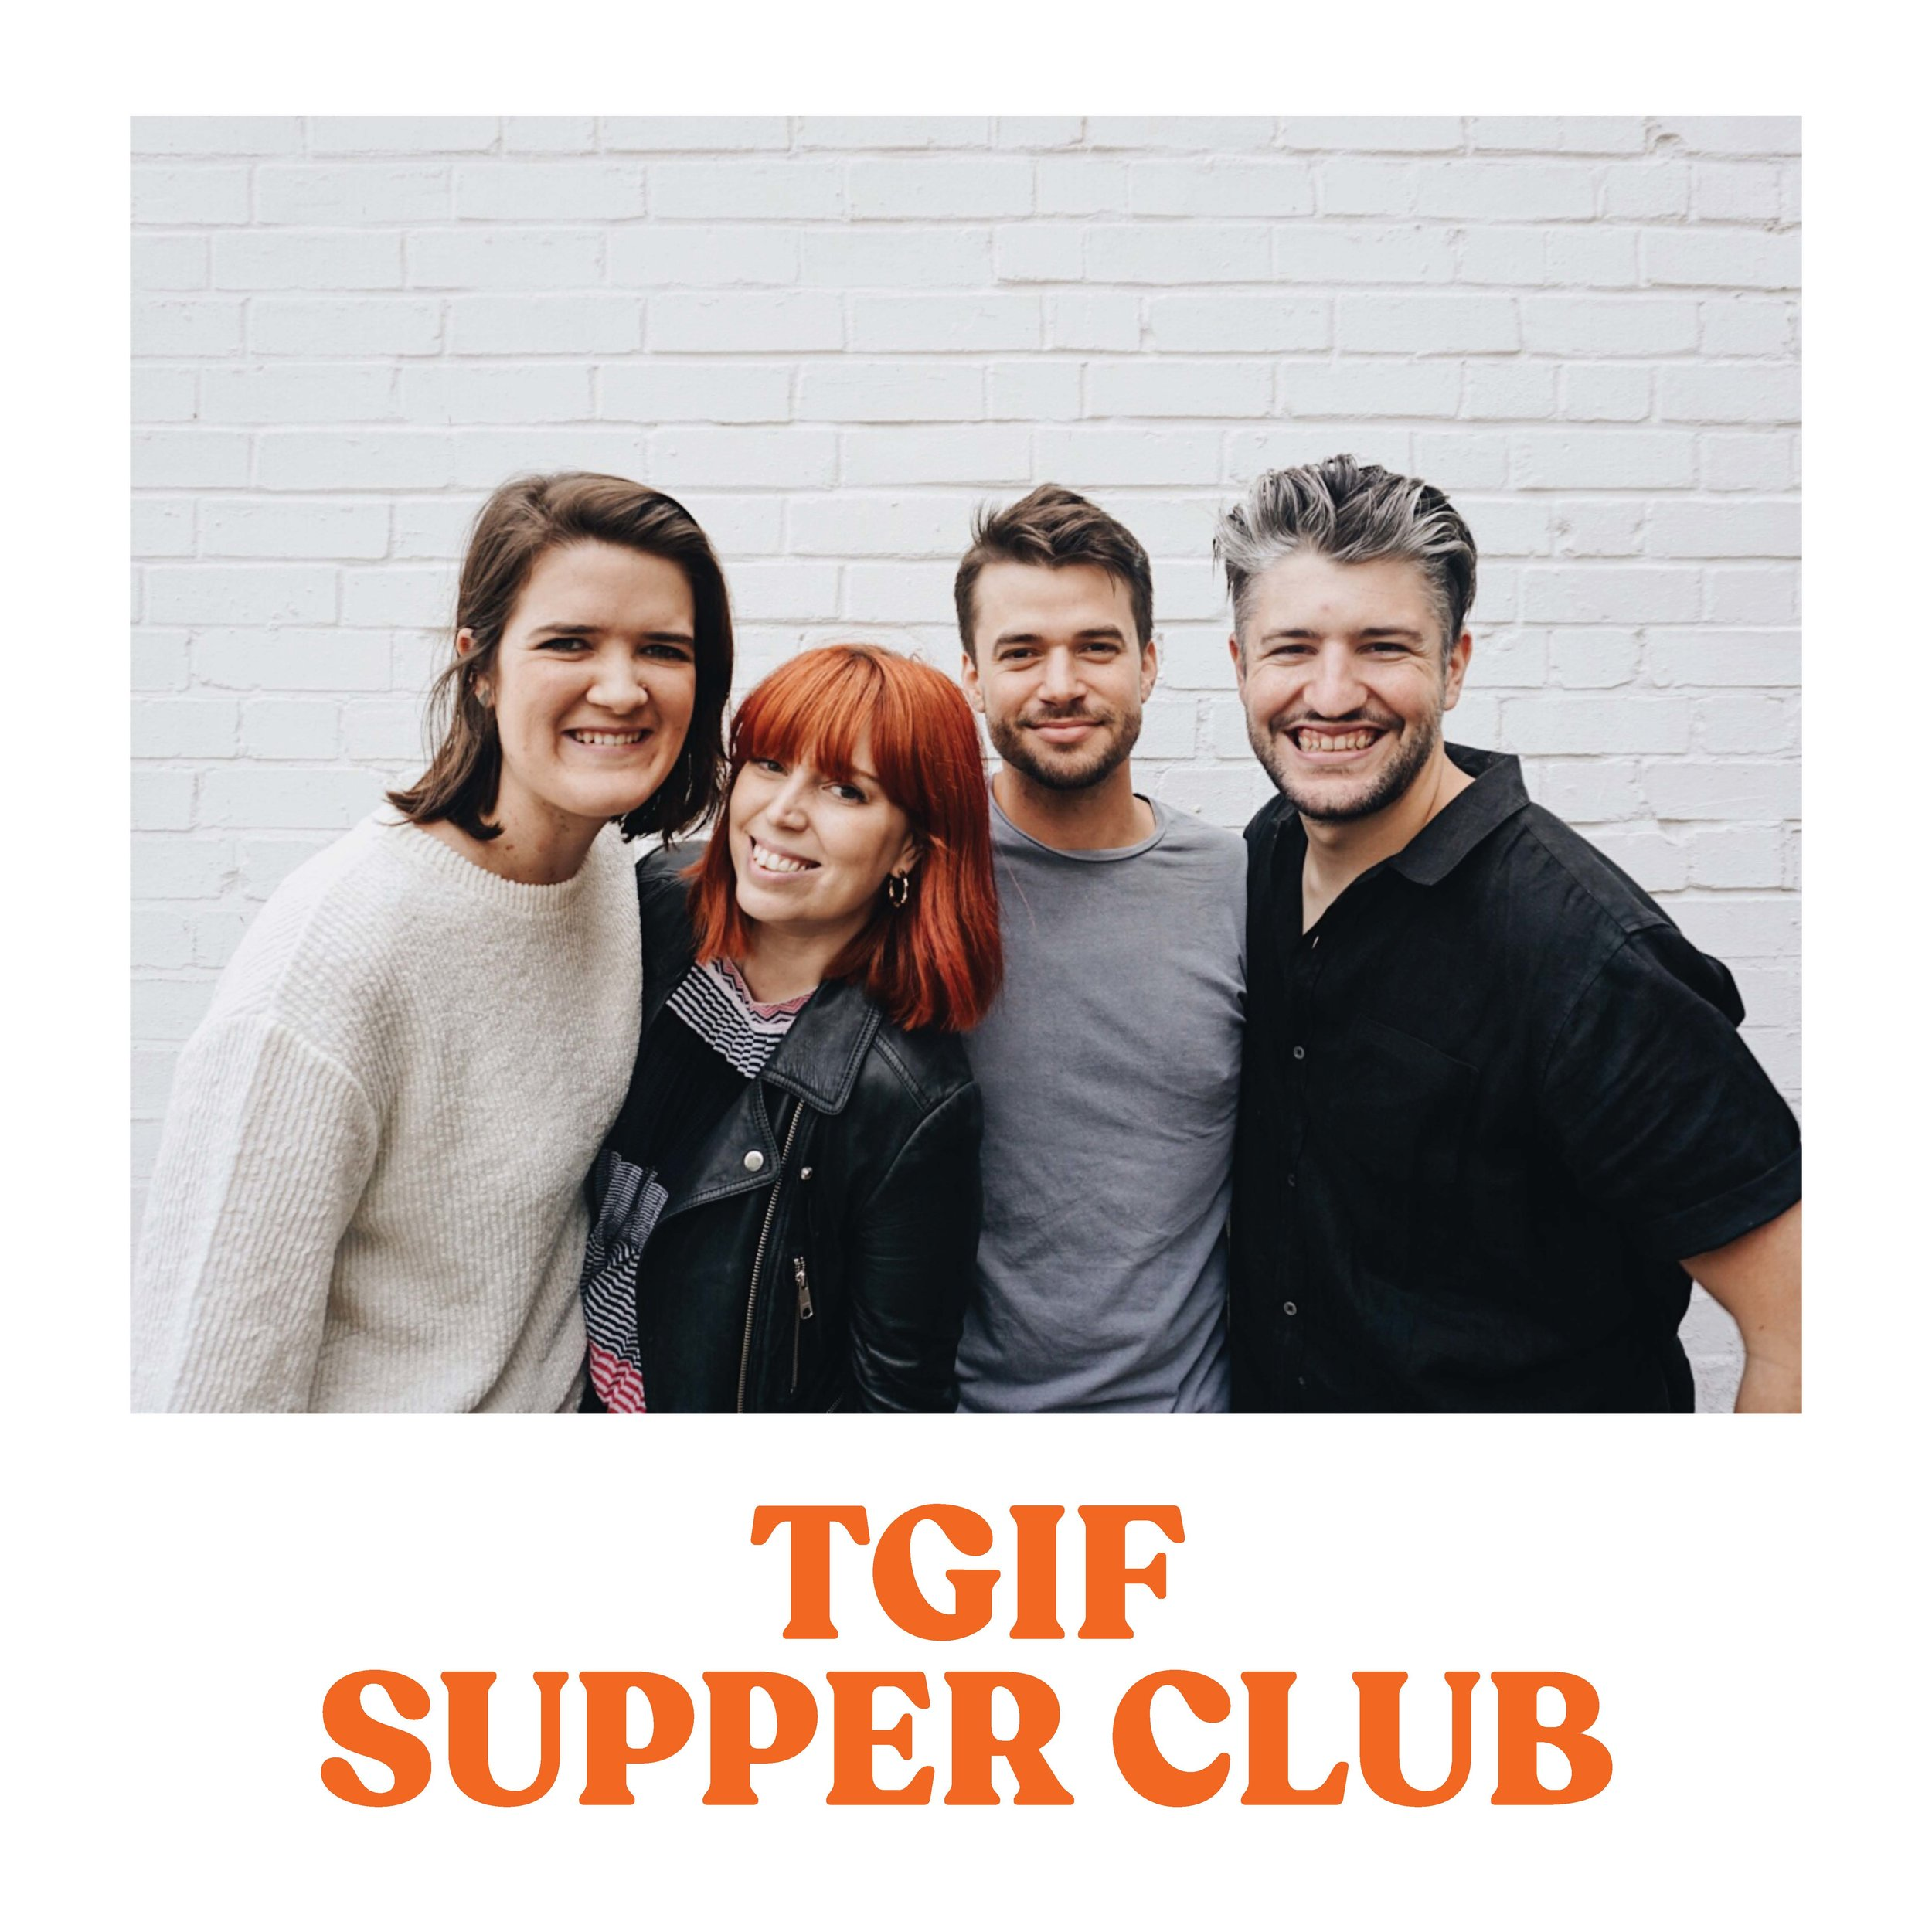 TGIF SUPPER CLUB    Fortnightly on Friday nights 7:30-9:30pm West Kensington W14   Jess and Jason Henderson, Channing and Brian Lowe Thank God it's Friday! A night to gather together with friends, chat, eat great food and do life together.  Contact: Jess Henderson   jessellenhenderson@icloud.com